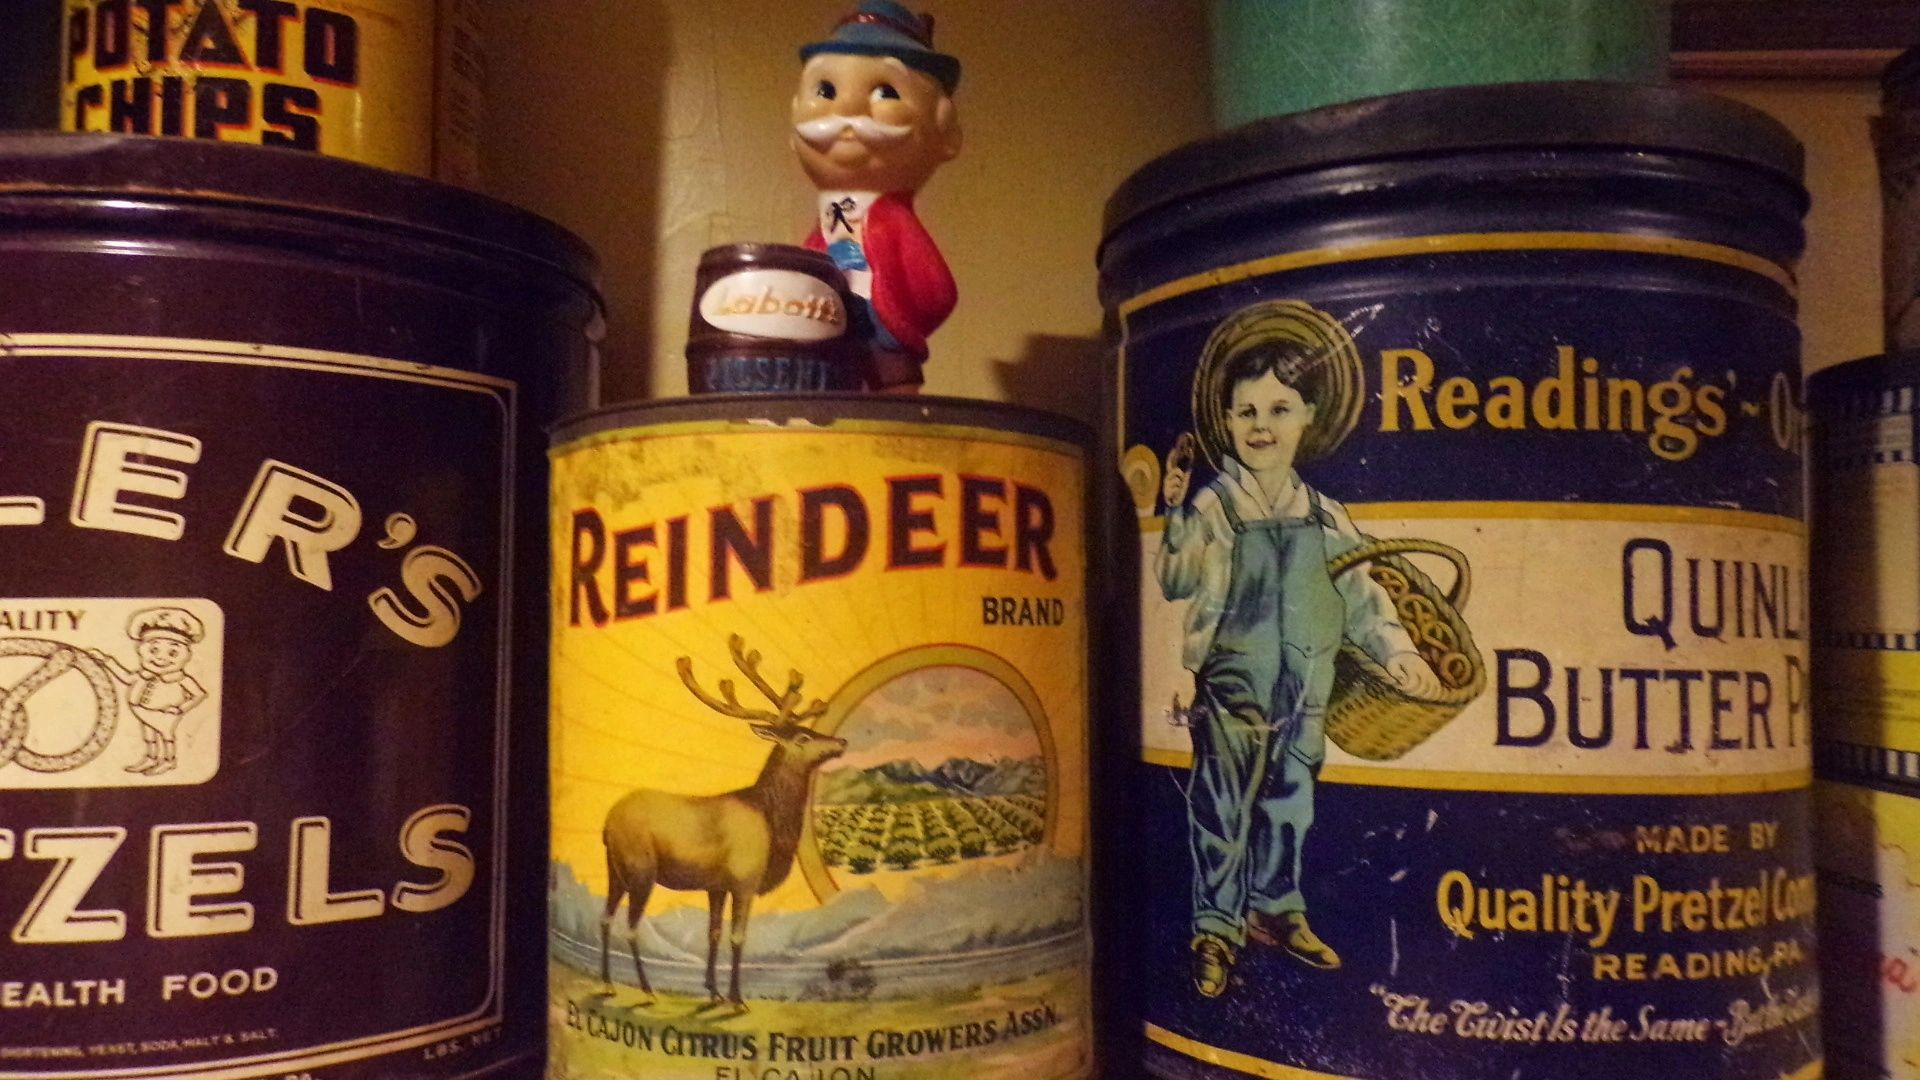 We buy collections of old snack tins, candy and snack cans. Email jefflebo@aol.com to sell yours.